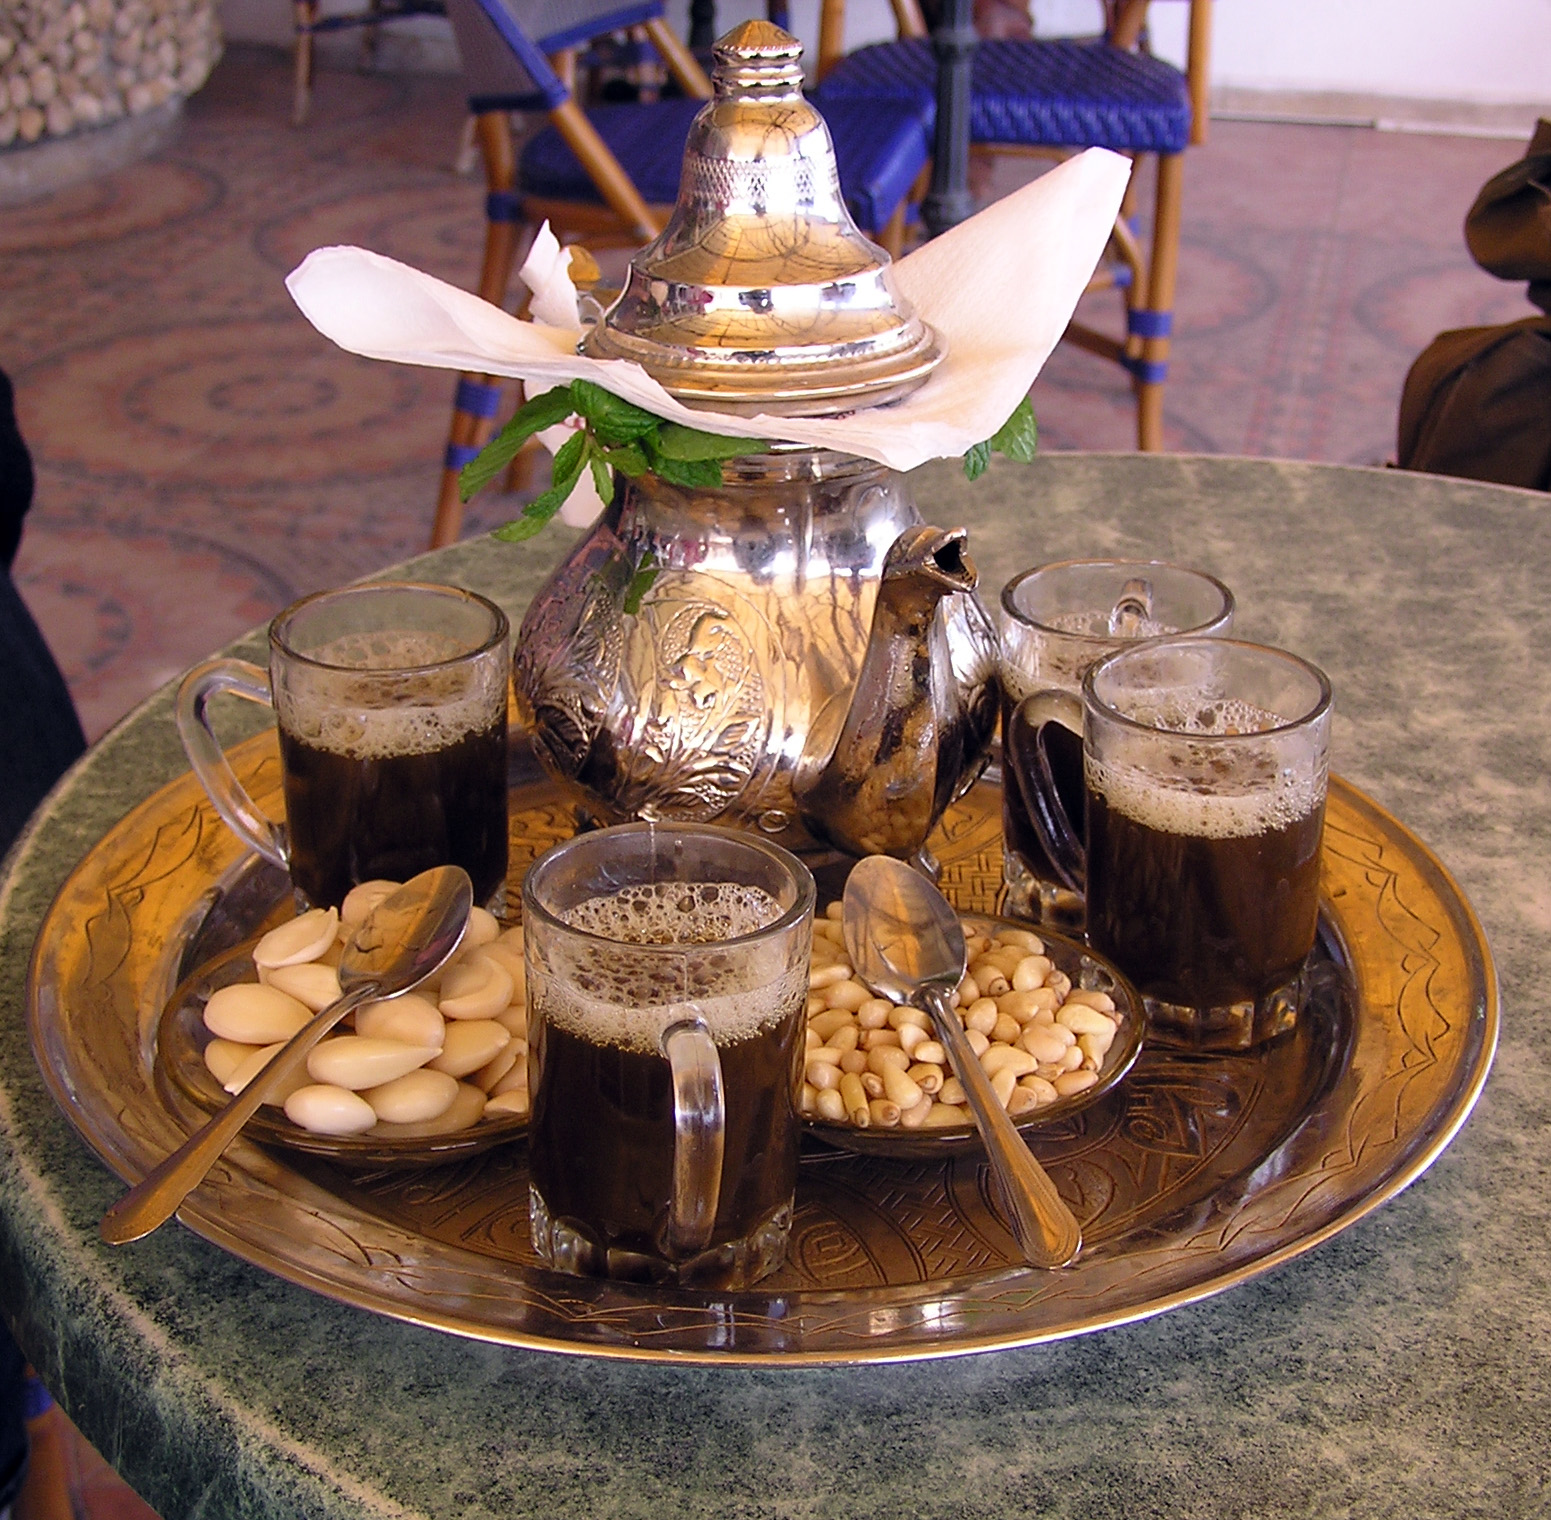 Arabic Coffee How Long To Boil